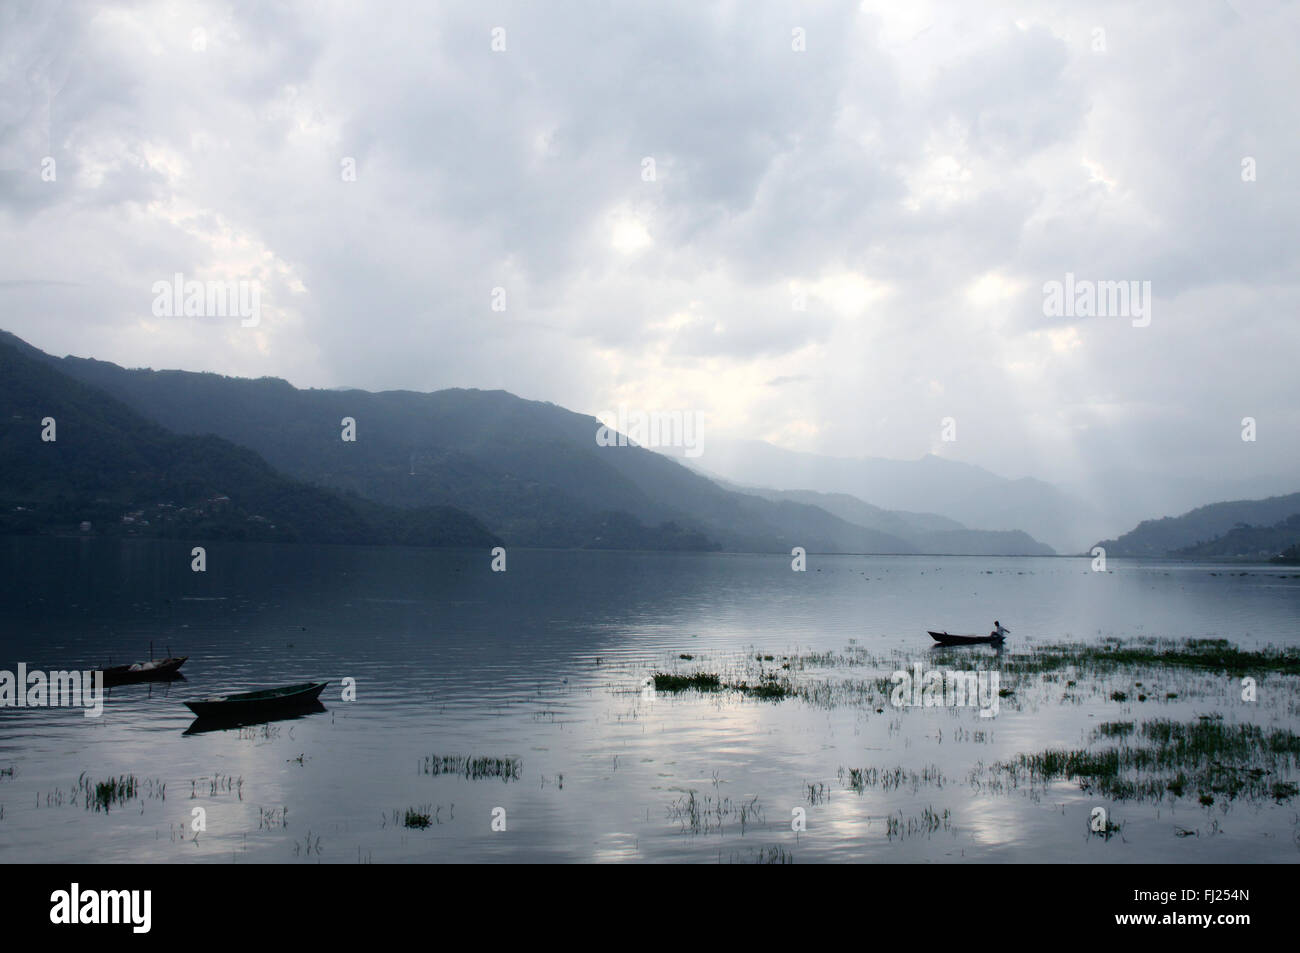 Nepal pictures of people and landscapes - Stock Image